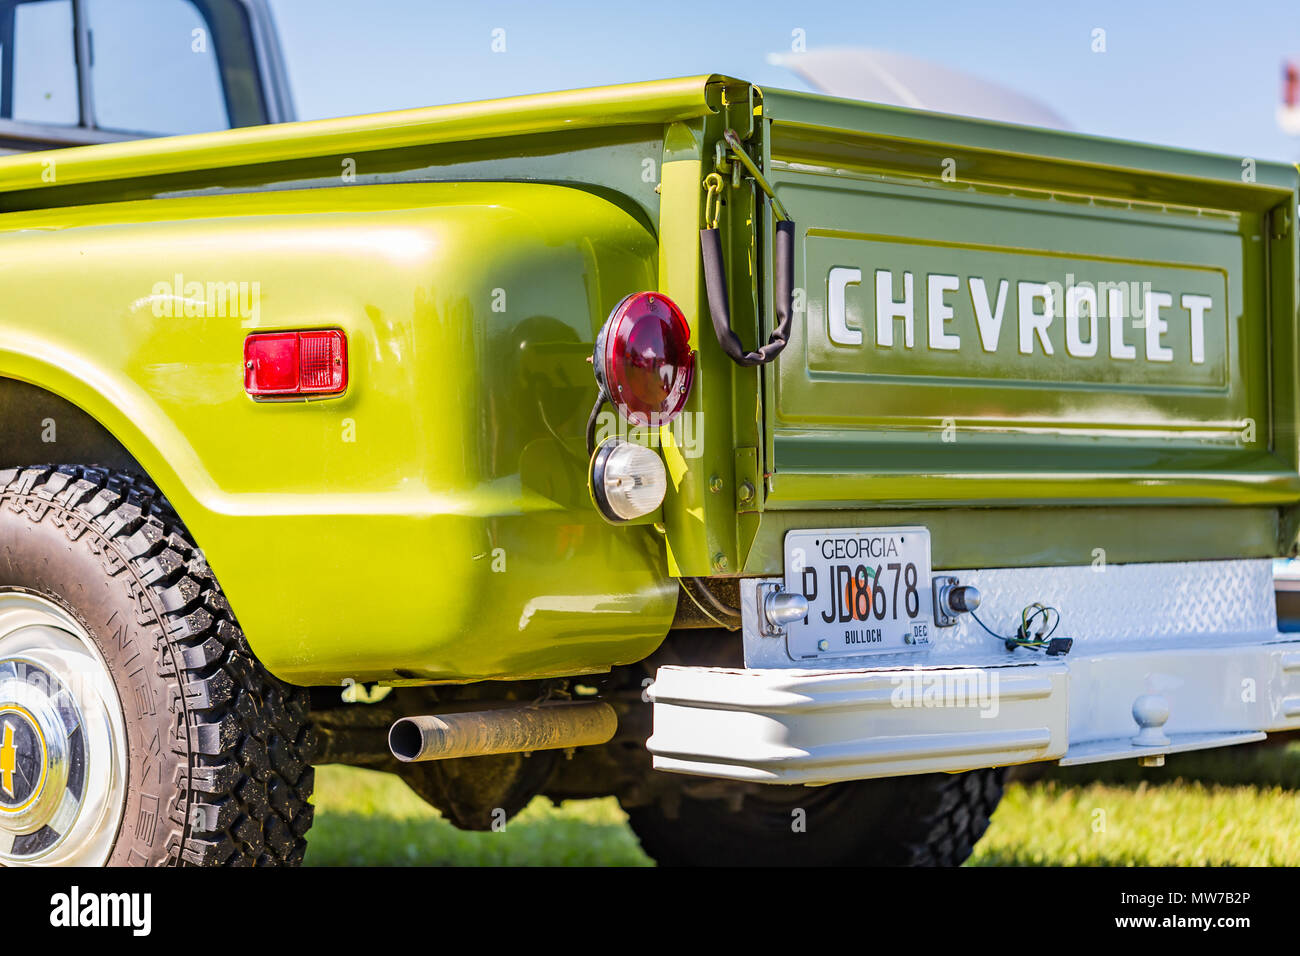 Old chevrolet tailgate